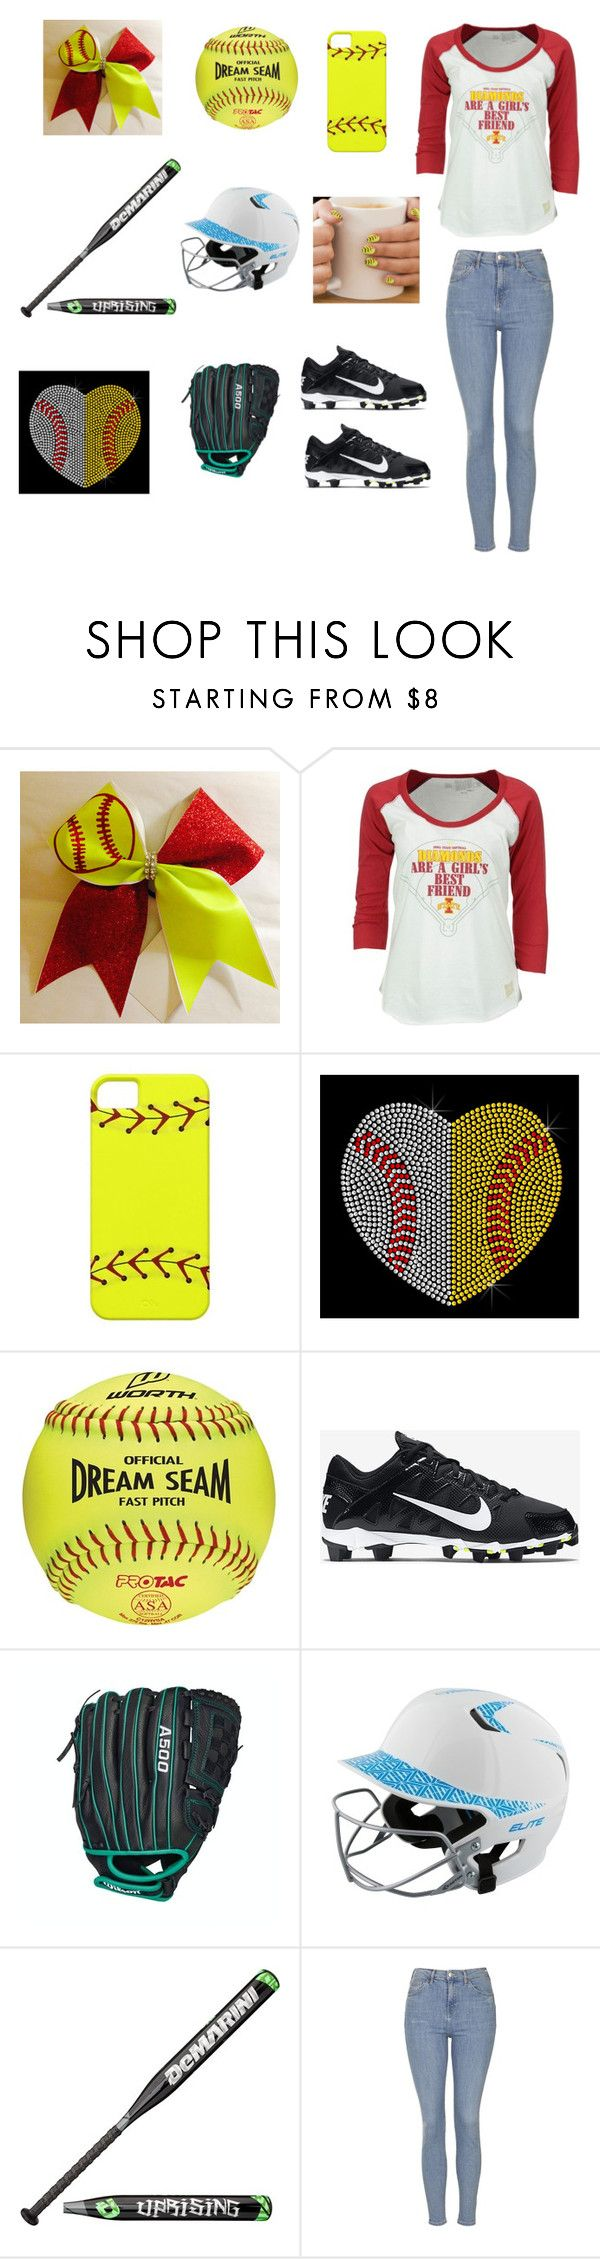 """Softball"" by ashling22 on Polyvore featuring Retro Brand, Rawlings, NIKE, Wilson, EASTON and Topshop"